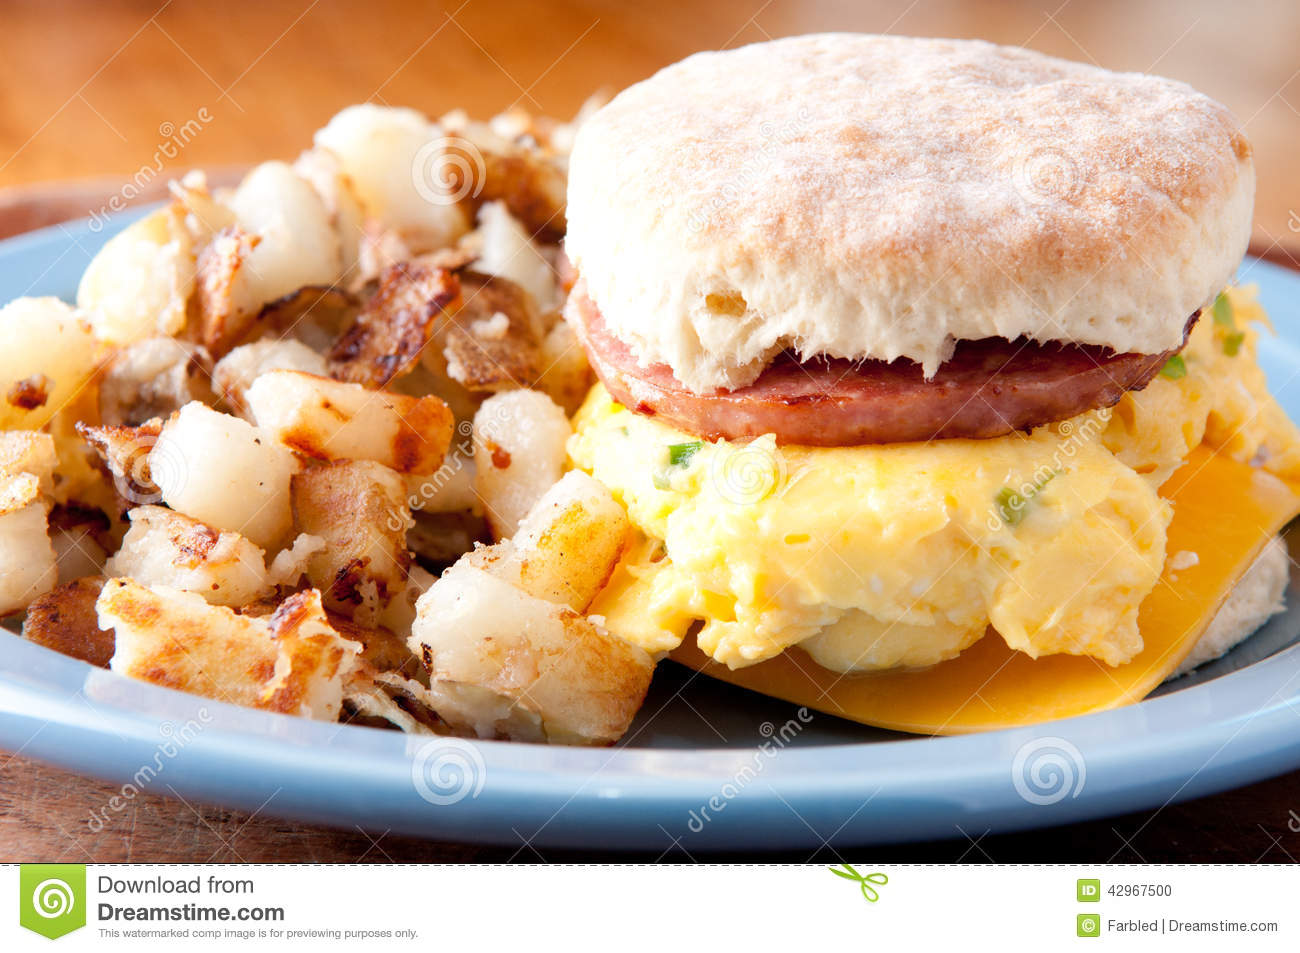 how to make sausage egg and cheese sandwich